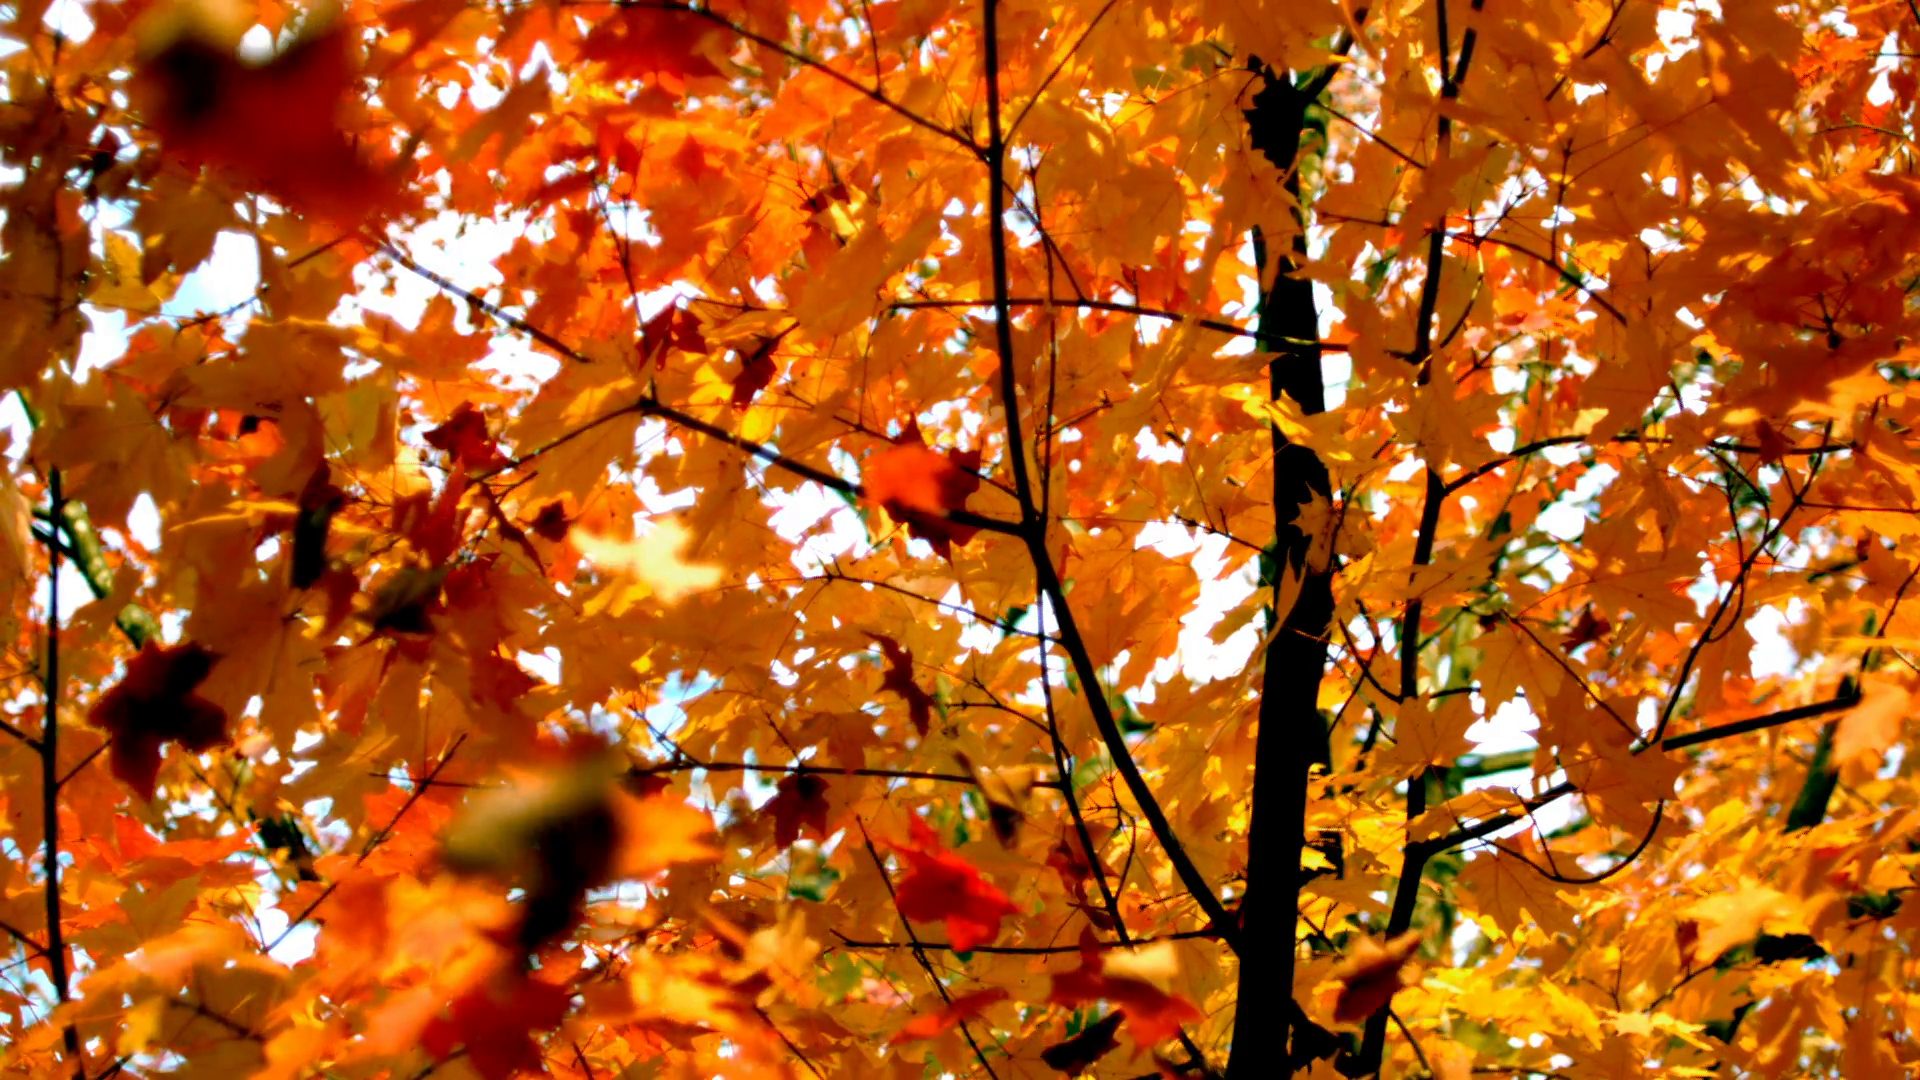 Slow Motion Autumn Leaves Falling 2 Stock Video Footage - Videoblocks